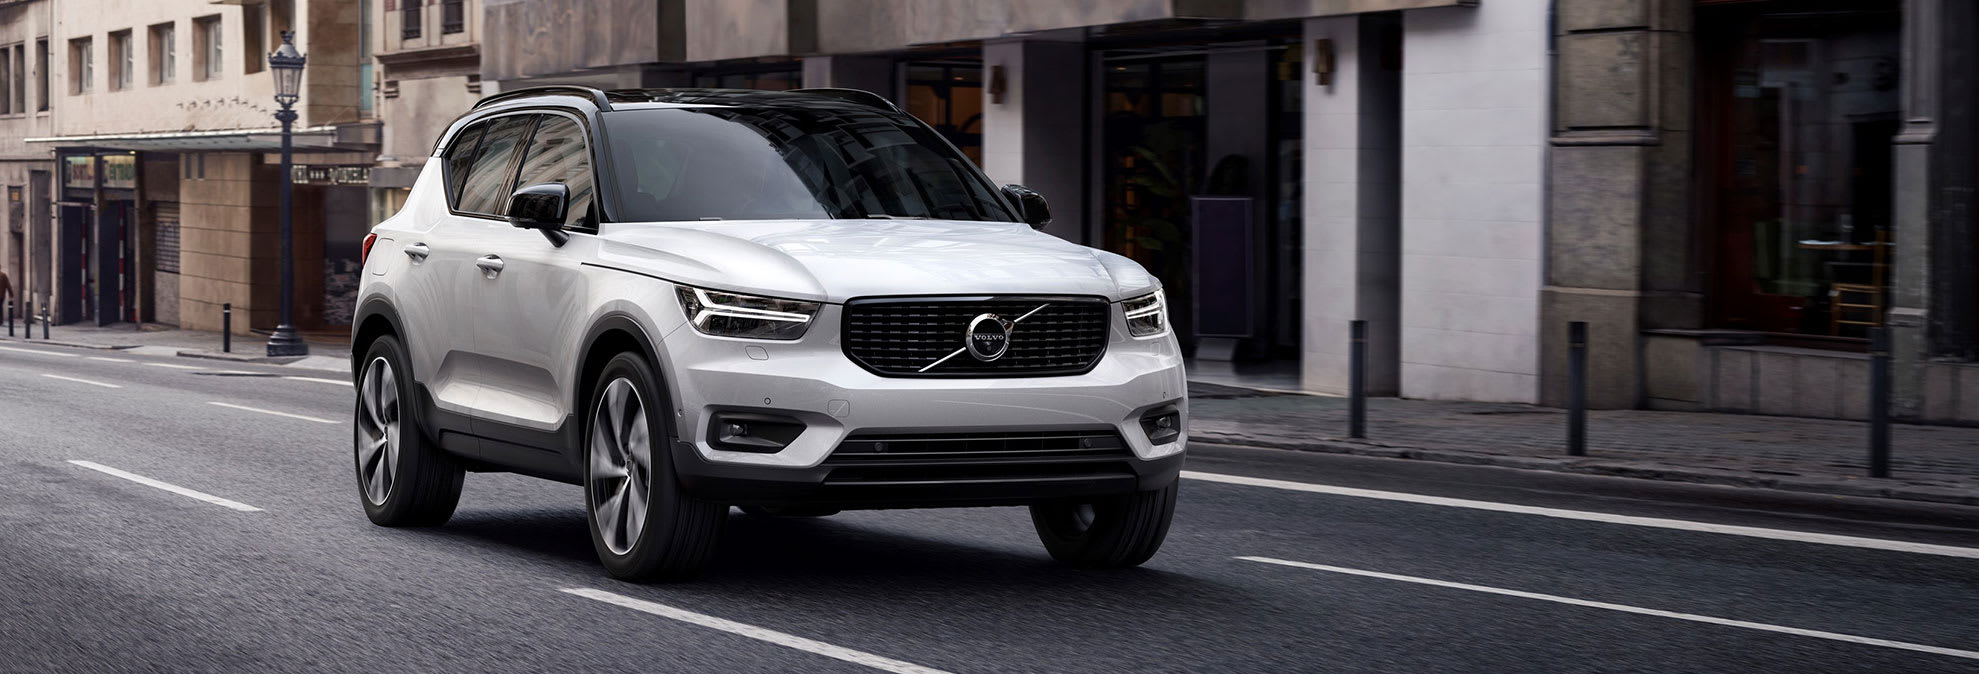 cross and photos lease volvo country photo specs